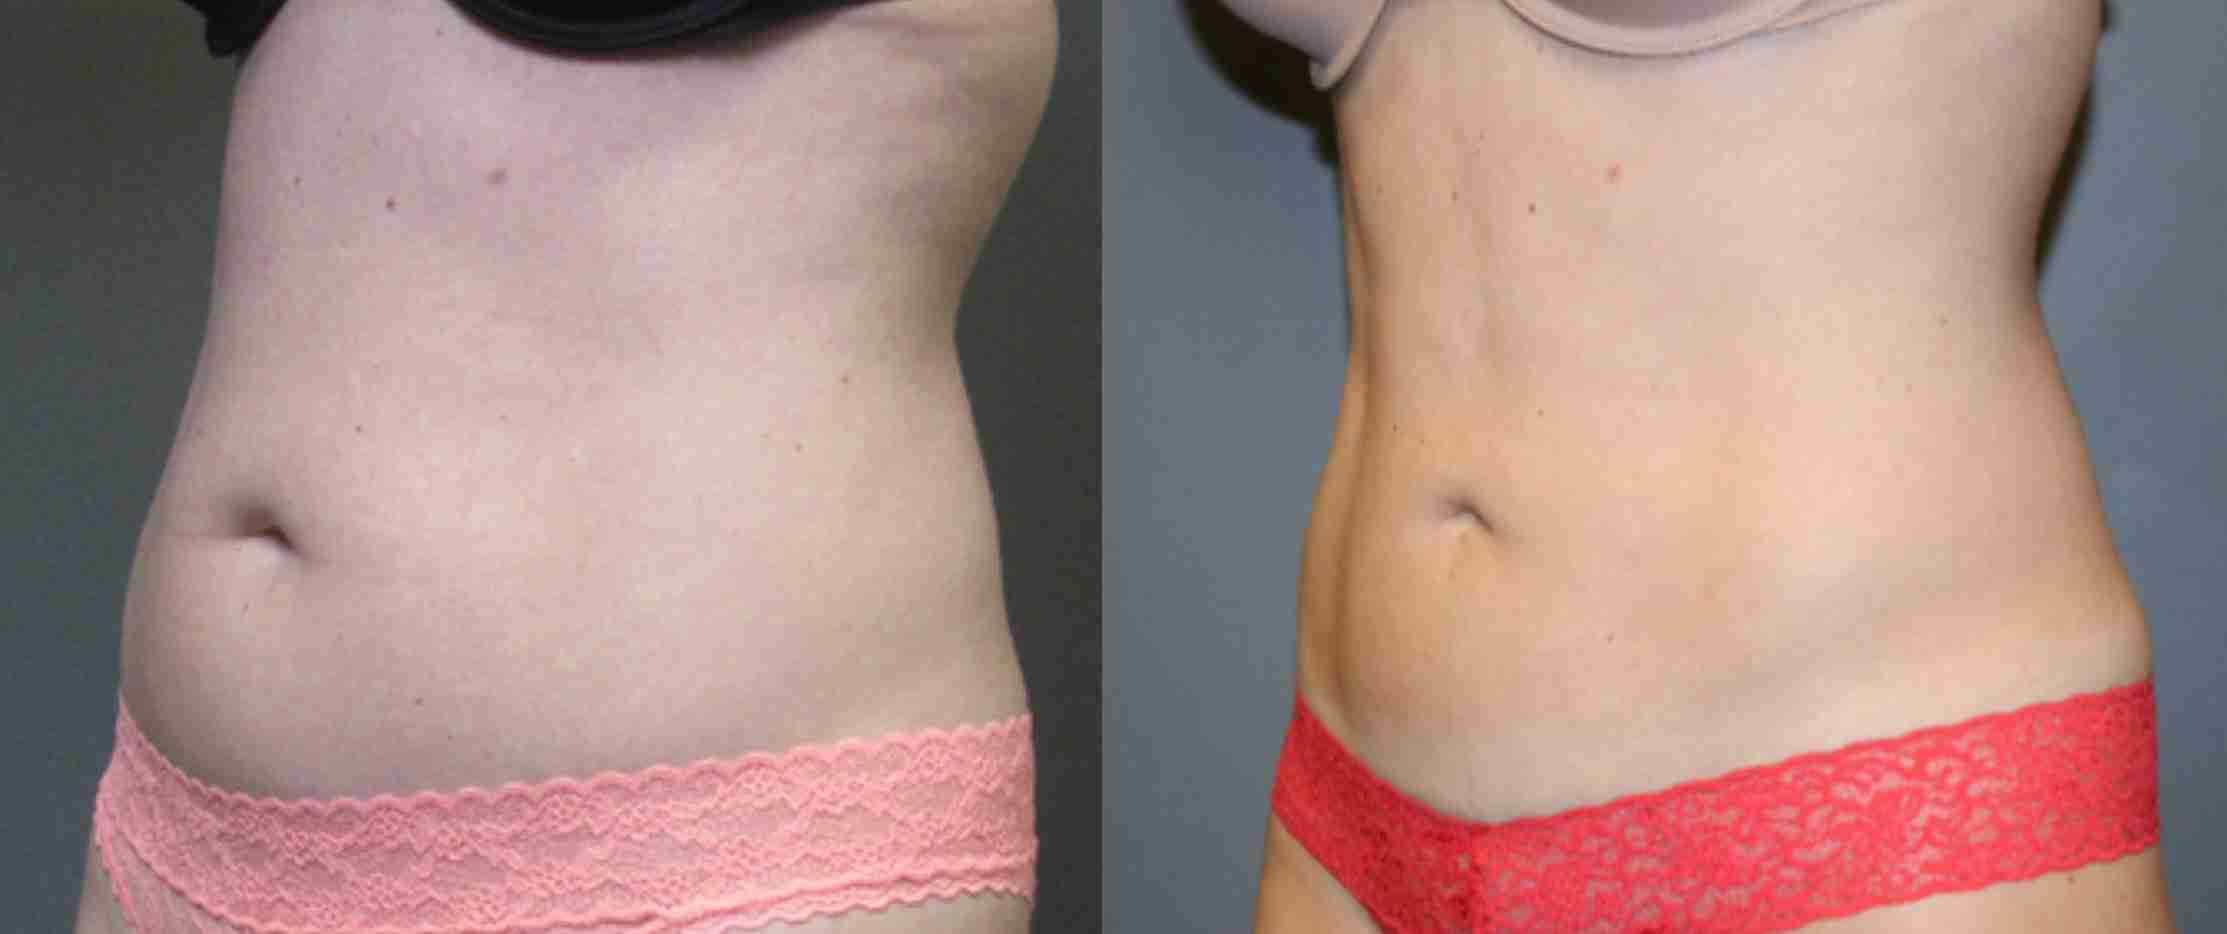 , Radiofrequency Assisted Liposuction, Dr. Aaron Stanes | Anti Ageing and Cosmetic Medicine